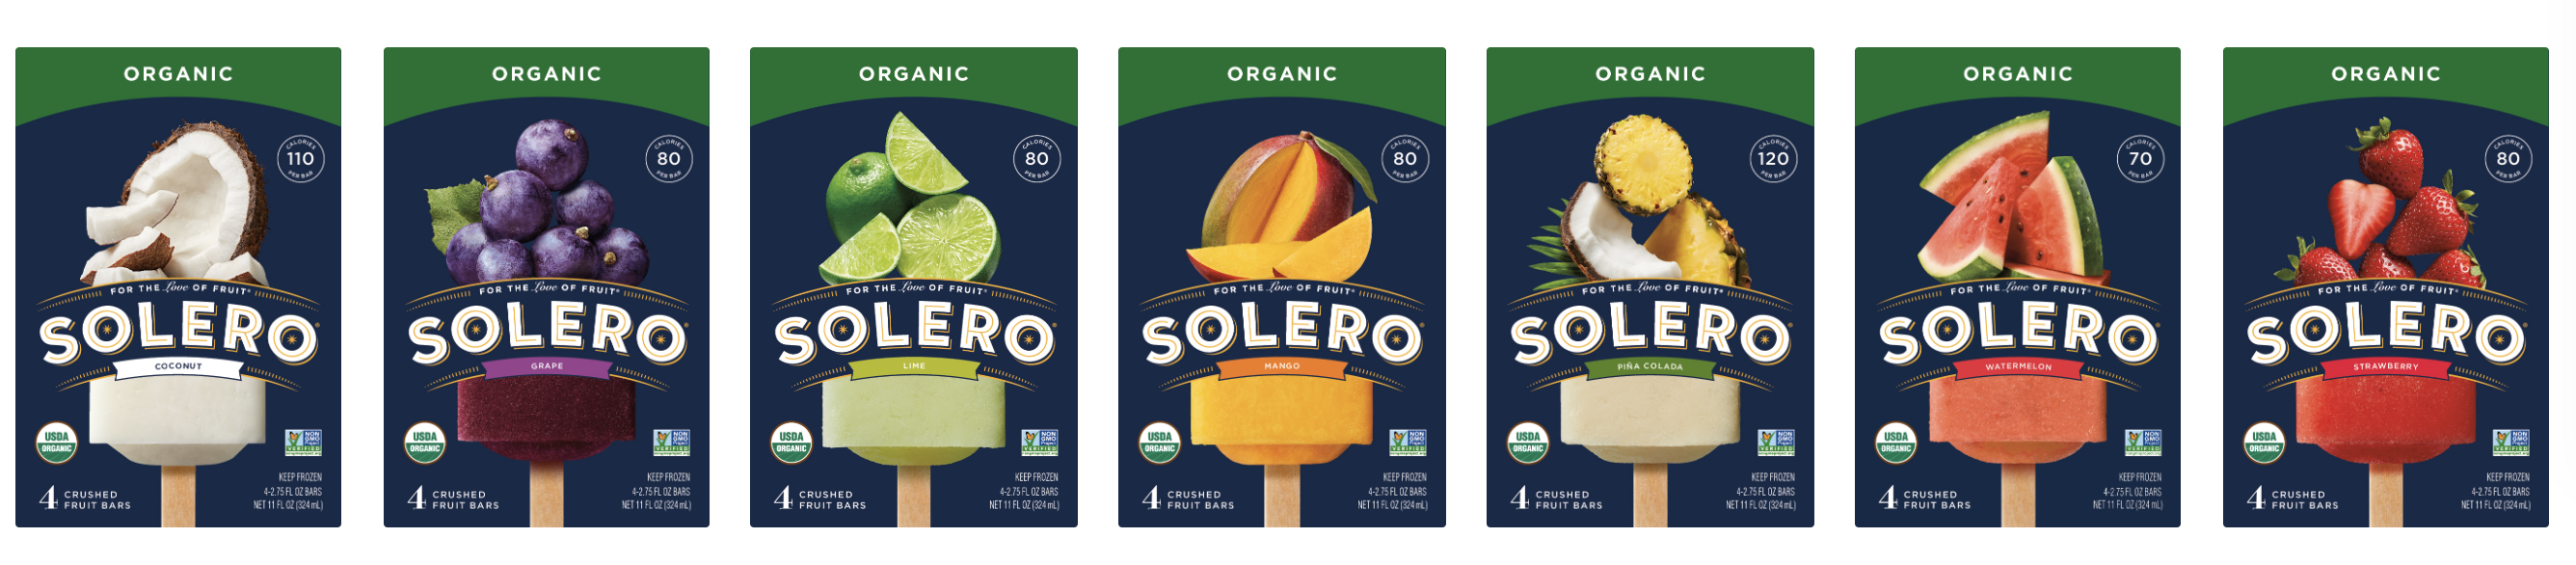 solero fruit bars, ice cream dessert